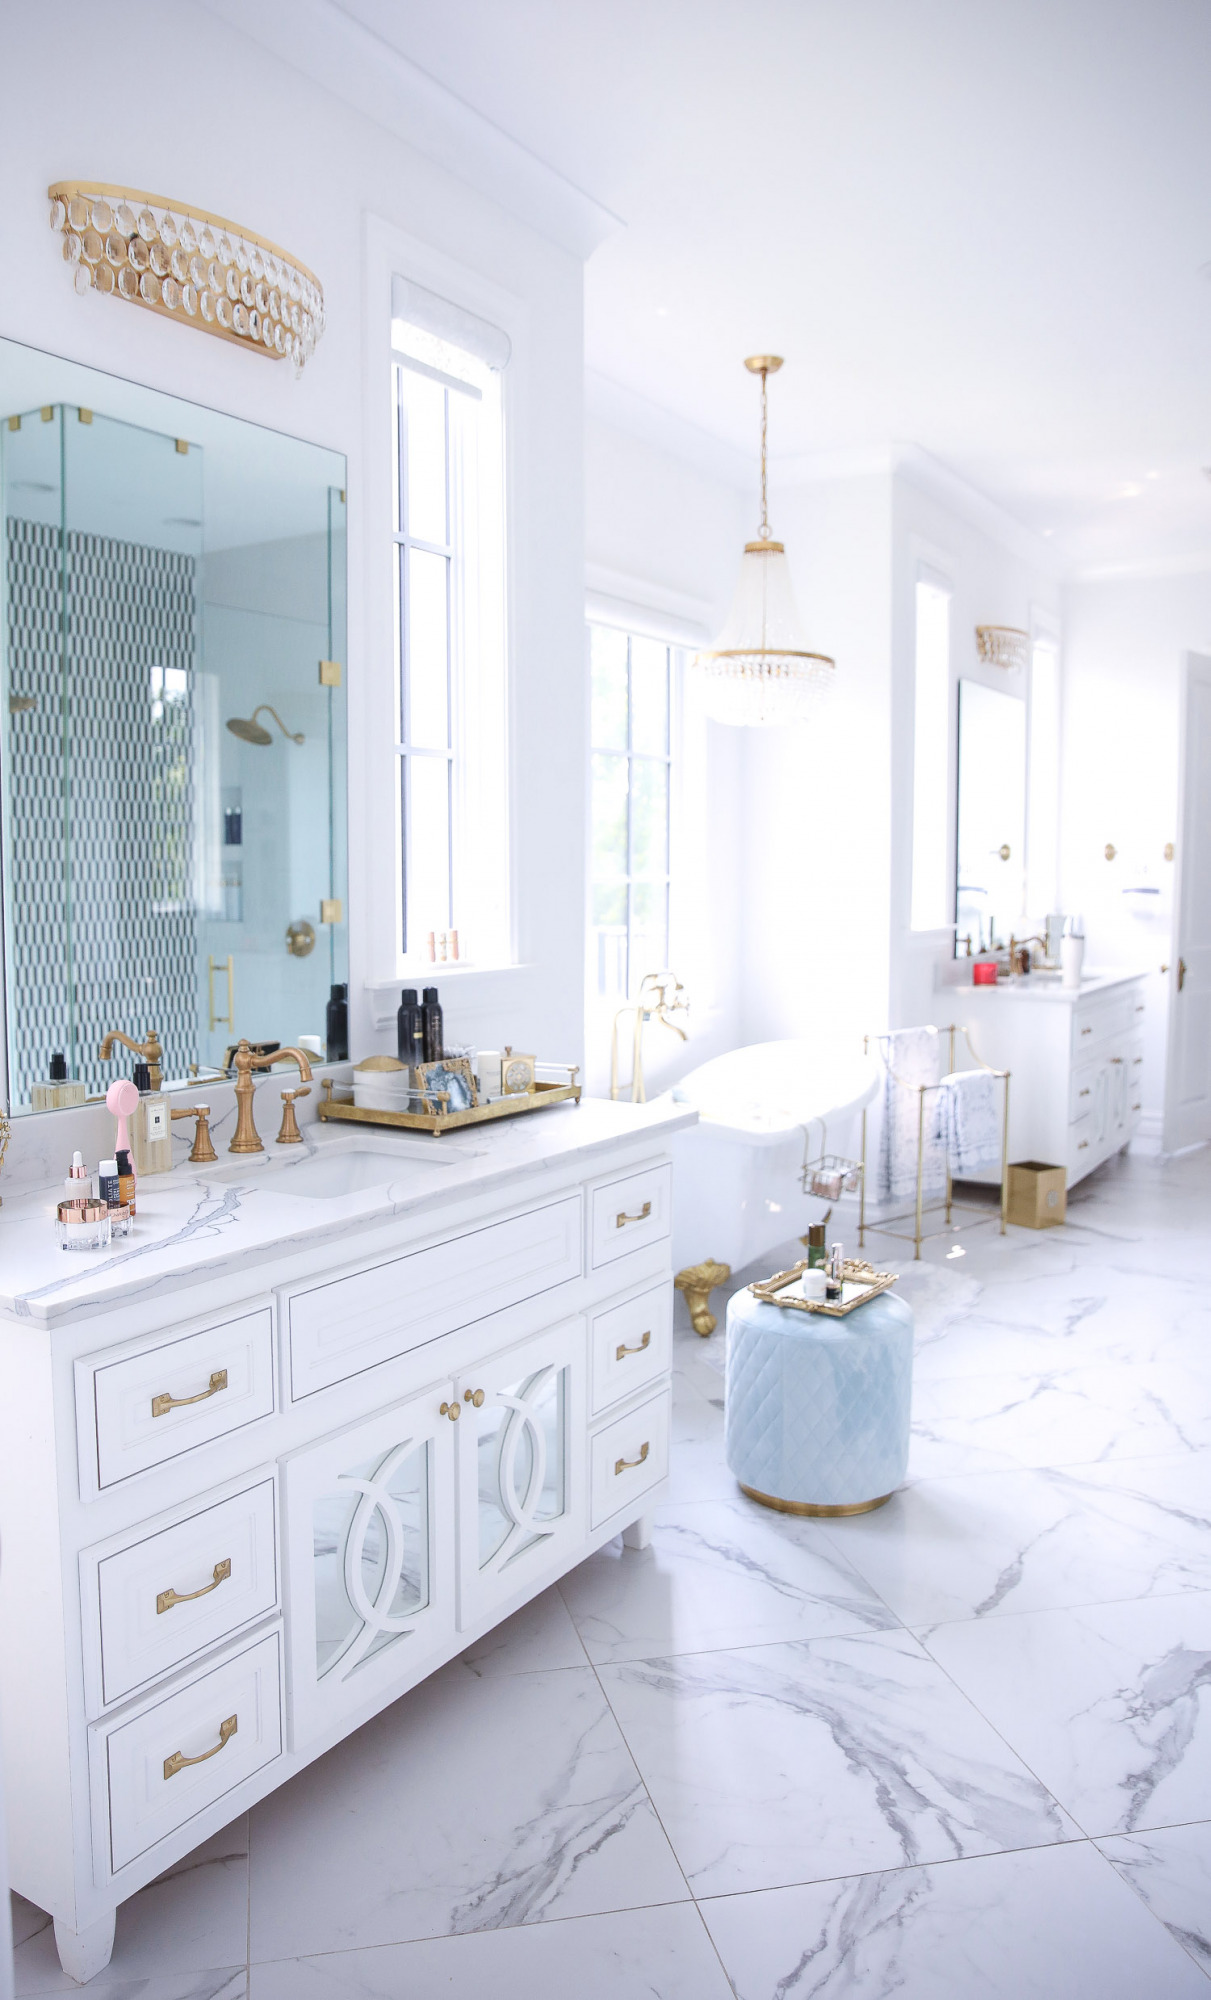 Delina Parfum de Marly set NSALE 2021, Emily gemma master bathroom, Nordstrom anniversary sale 2021 beauty must haves, anthropologie bathrom decor 2021, pinterest bathroom all white gold | Nordstrom Anniversary Sale 2021 by popular US life and style blog, The Sweetest Thing: image of a master bathroom with white marble flooring, white vanities, gold and crystal chandeliers and a white and gold clawfoot tub.